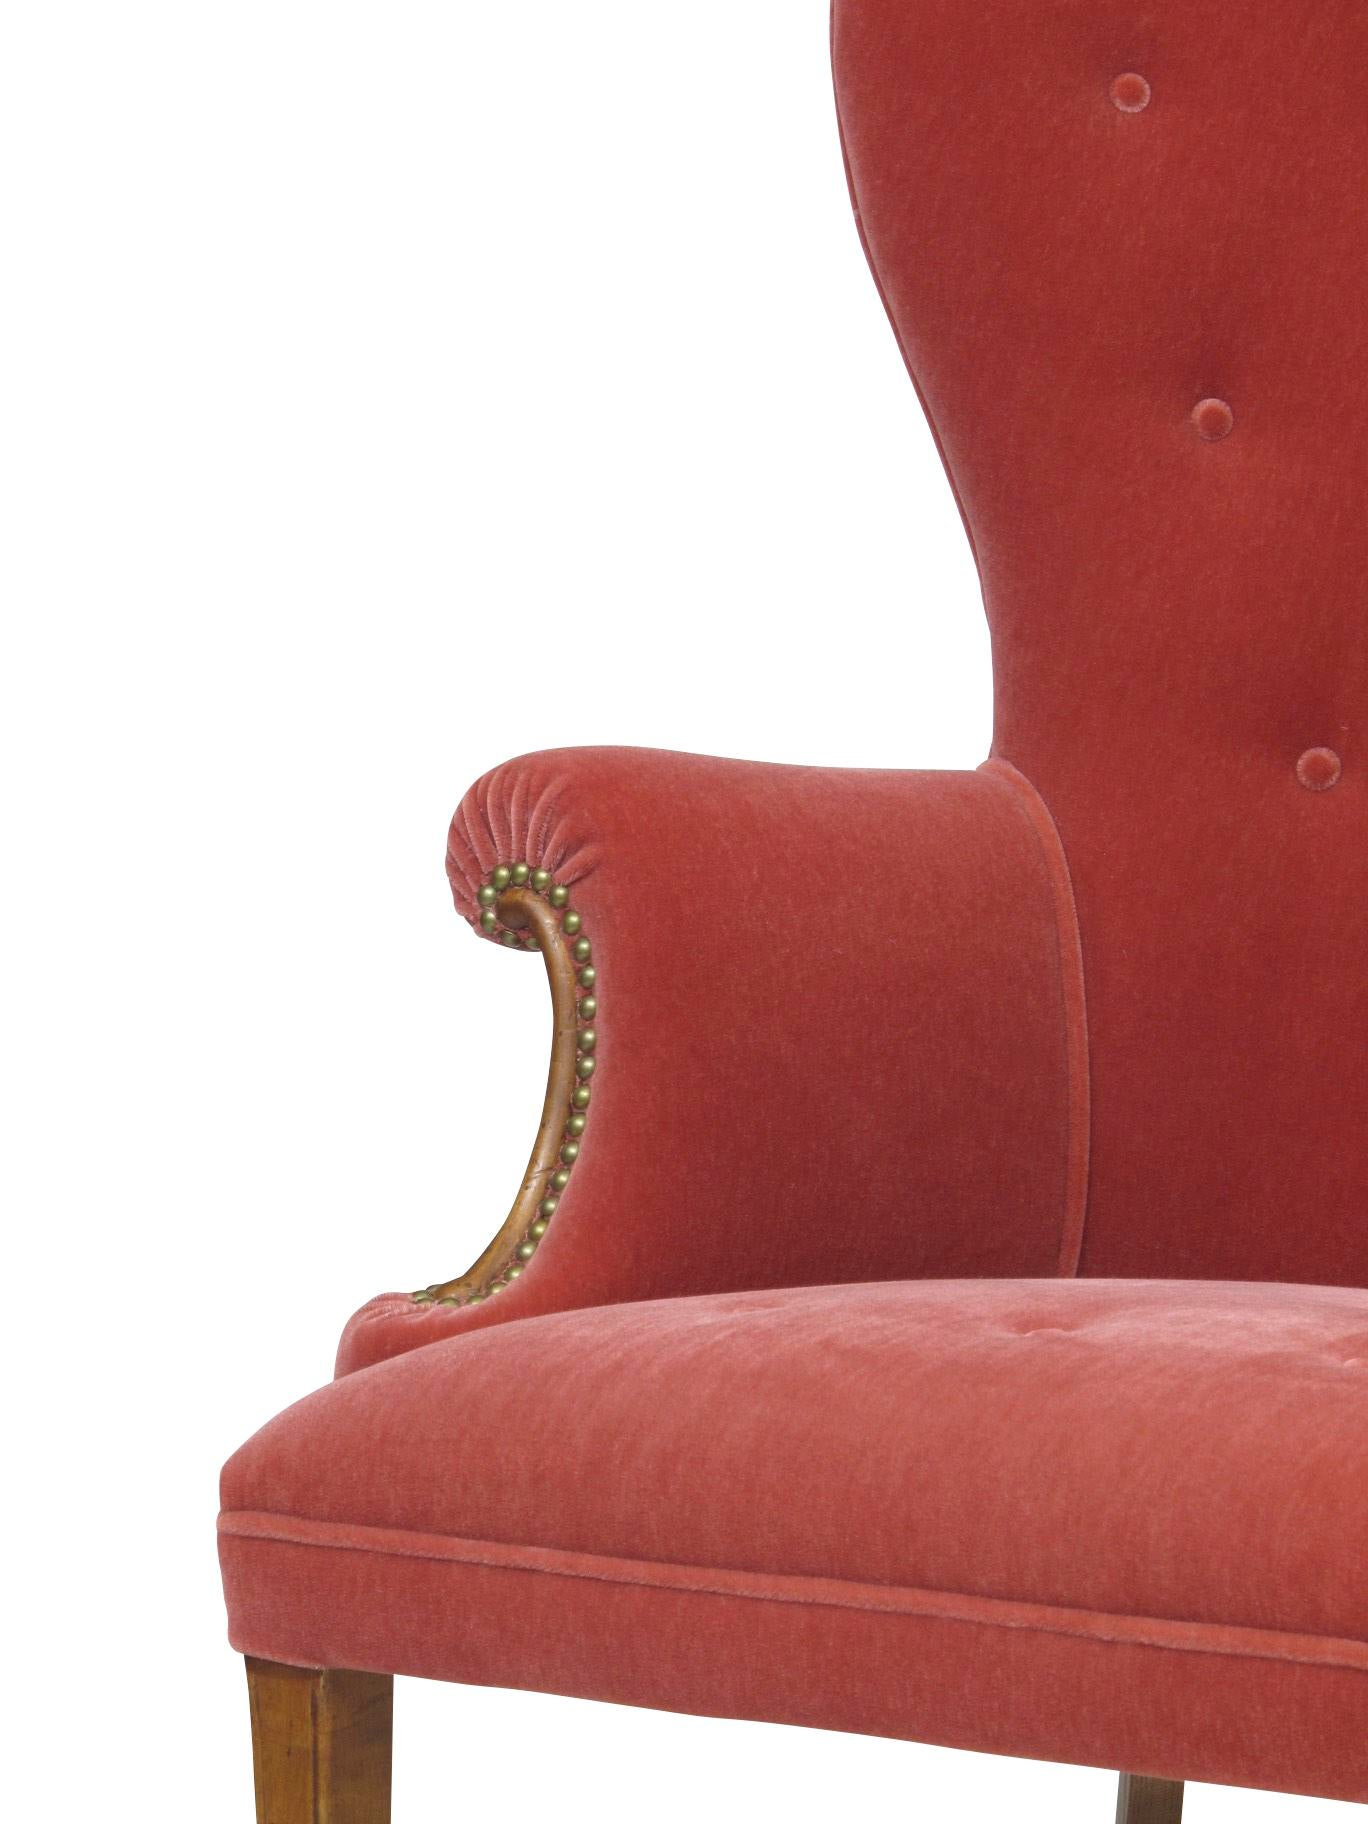 Hollywood Regency Pink Mohair Lounge Chairs For Sale In San Francisco    Image 6 Of 7